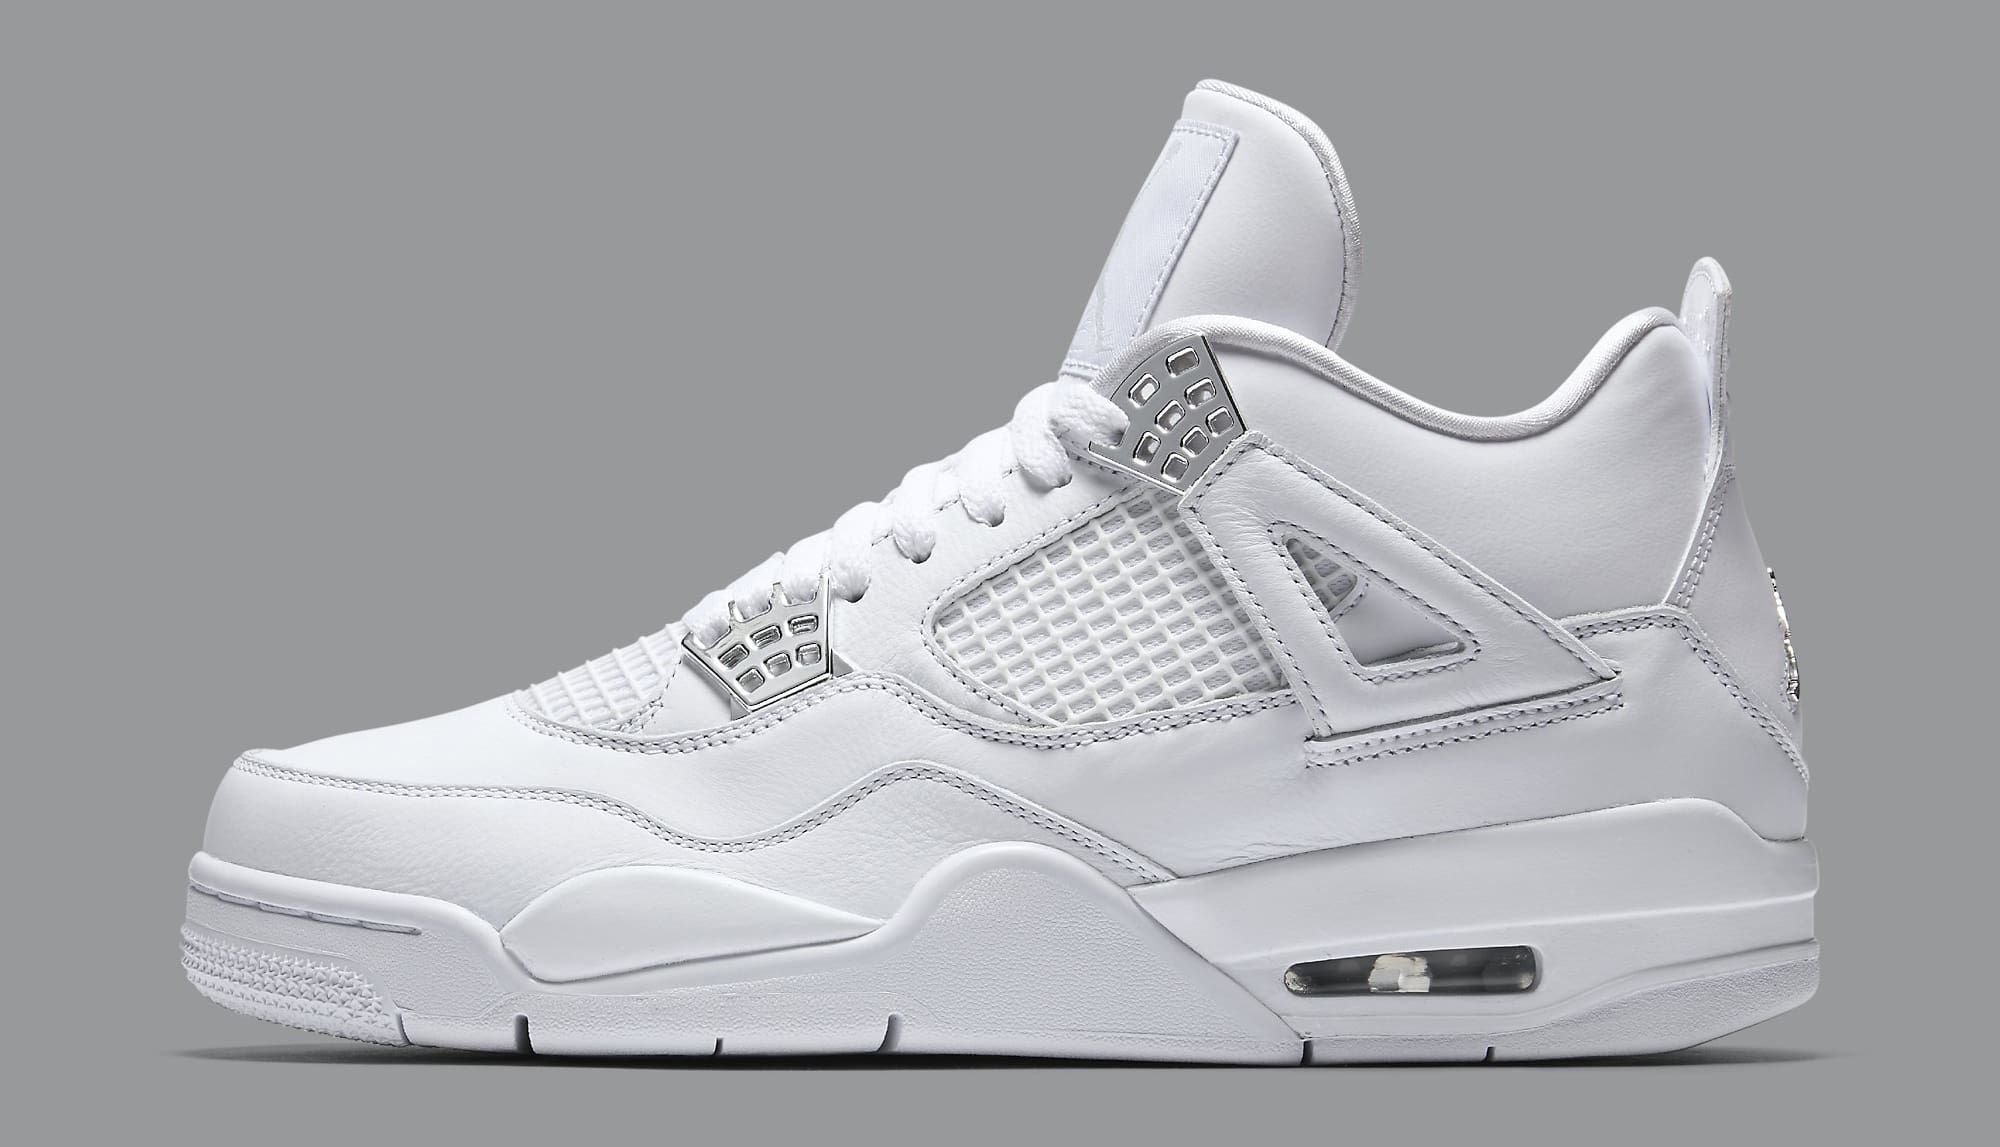 Nike Air Jordan IV Pure Money